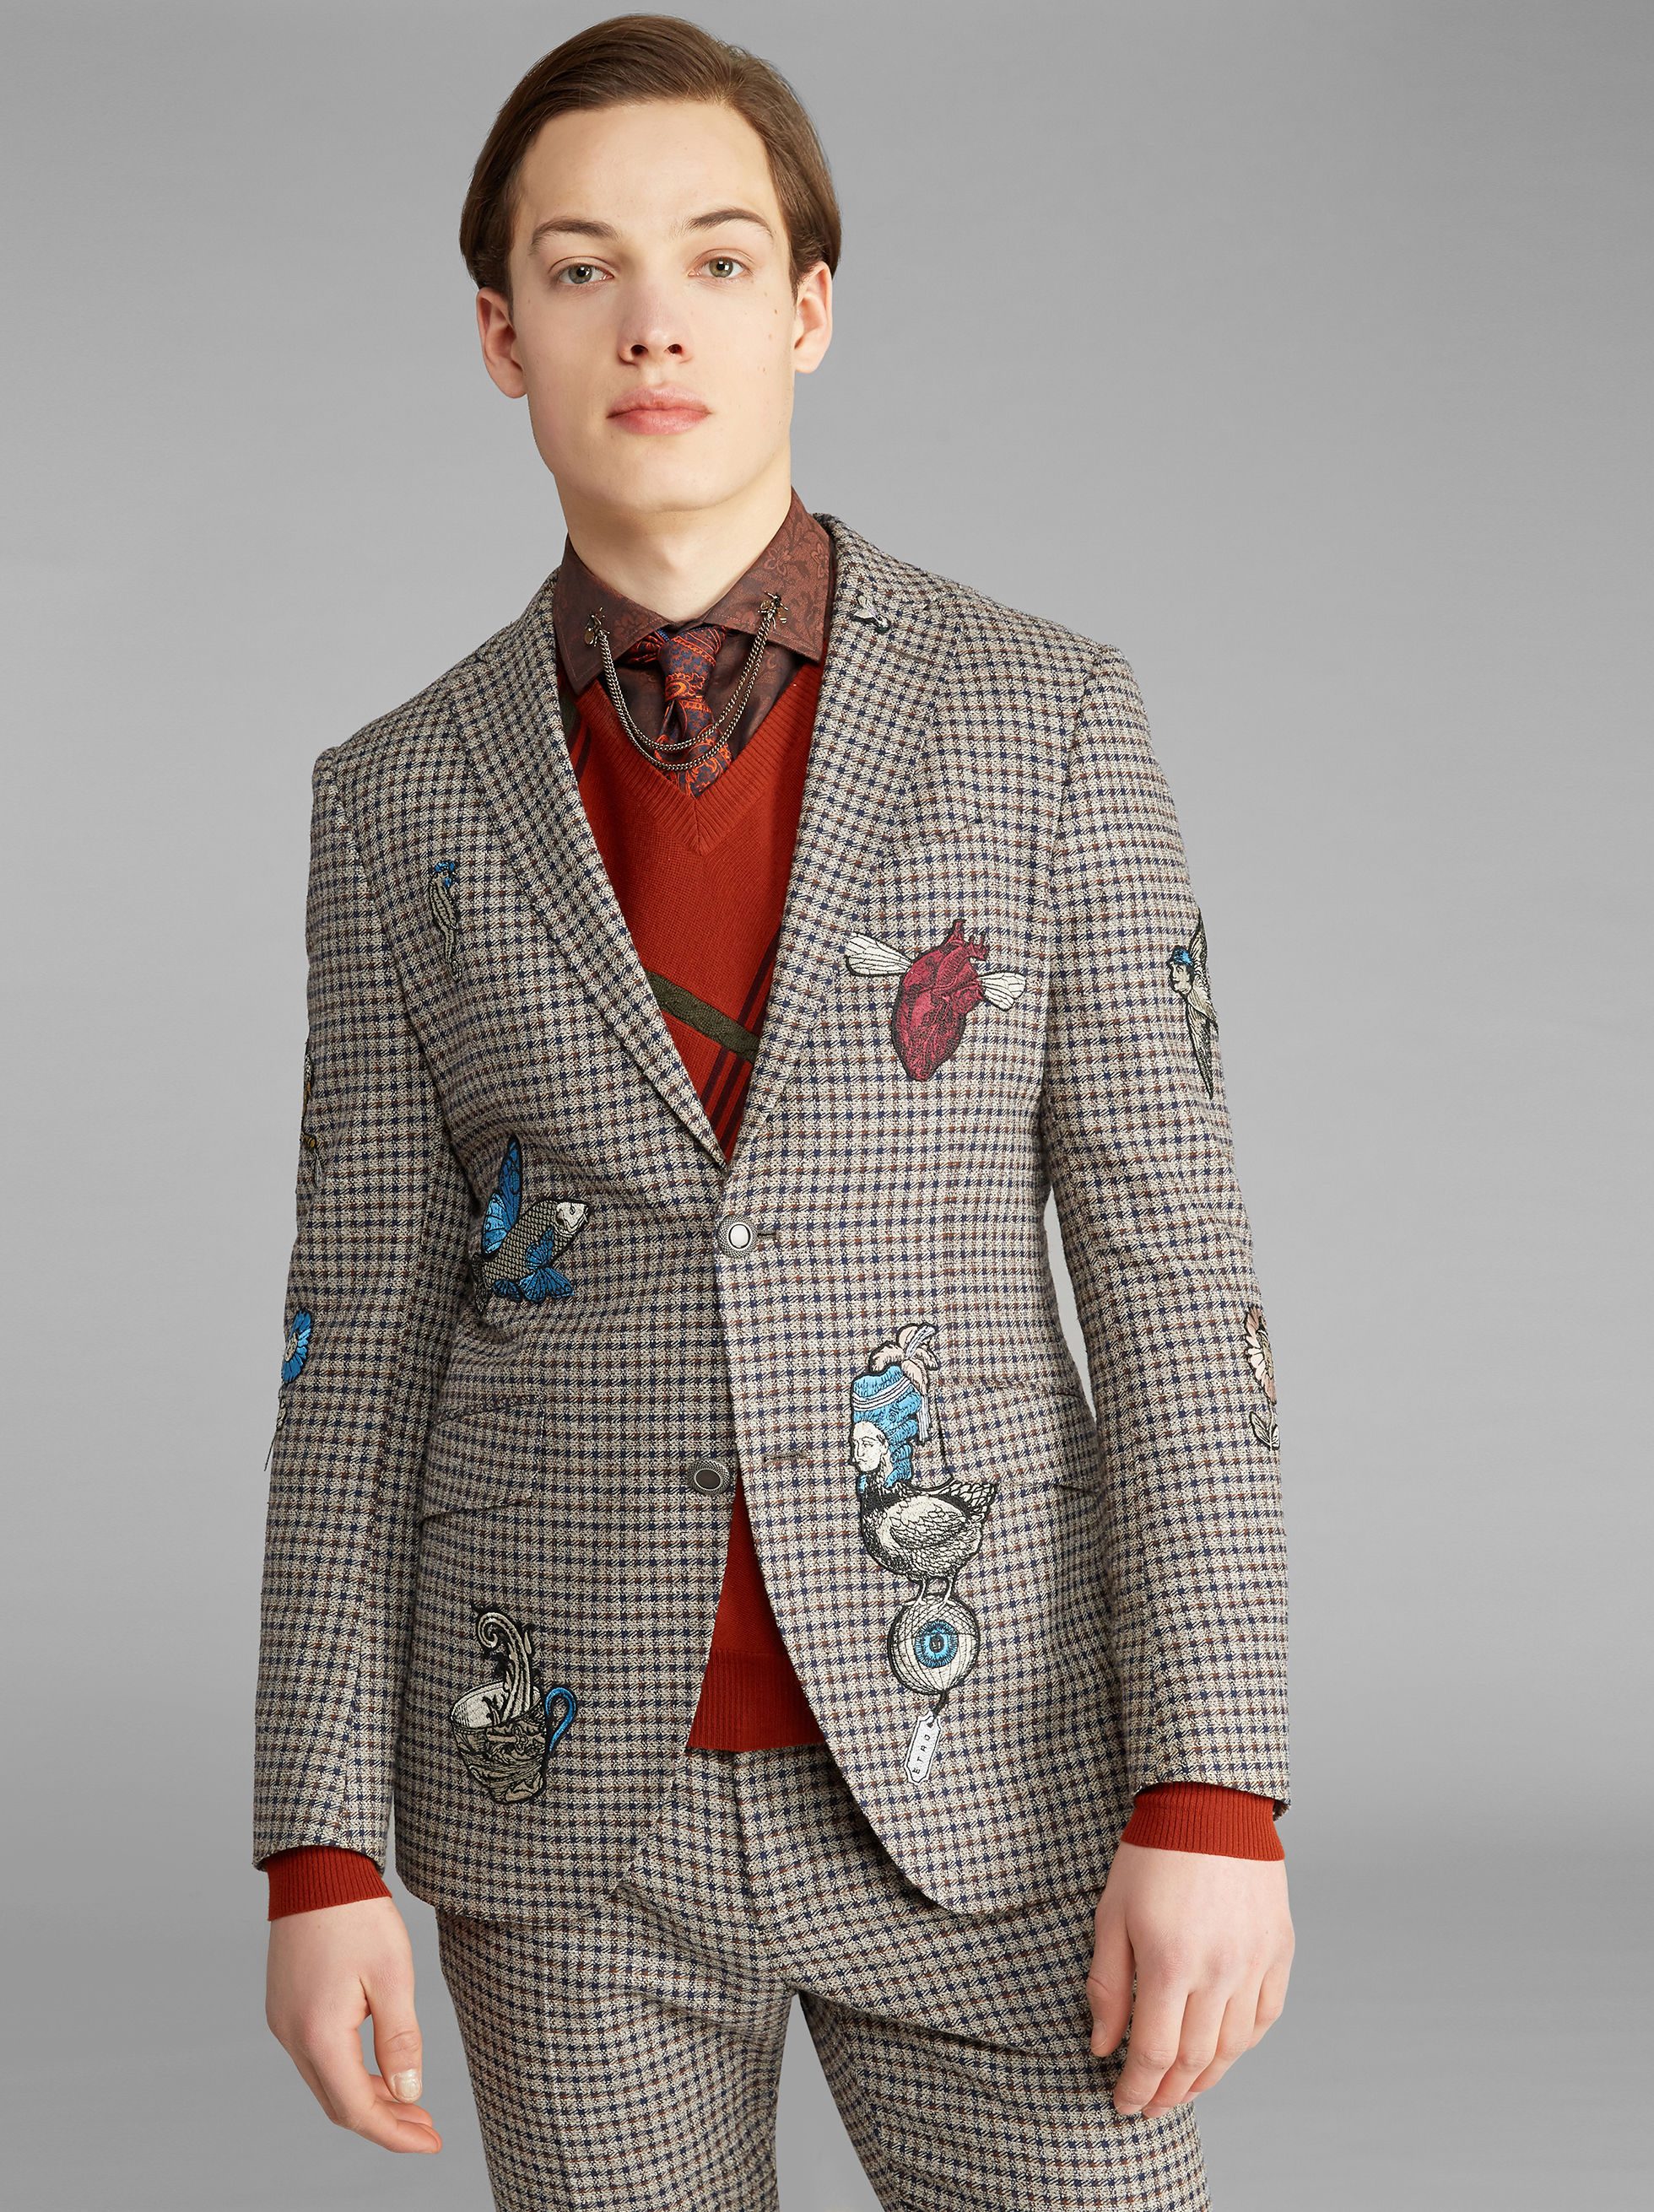 CHECK JACKET WITH EMBROIDERY